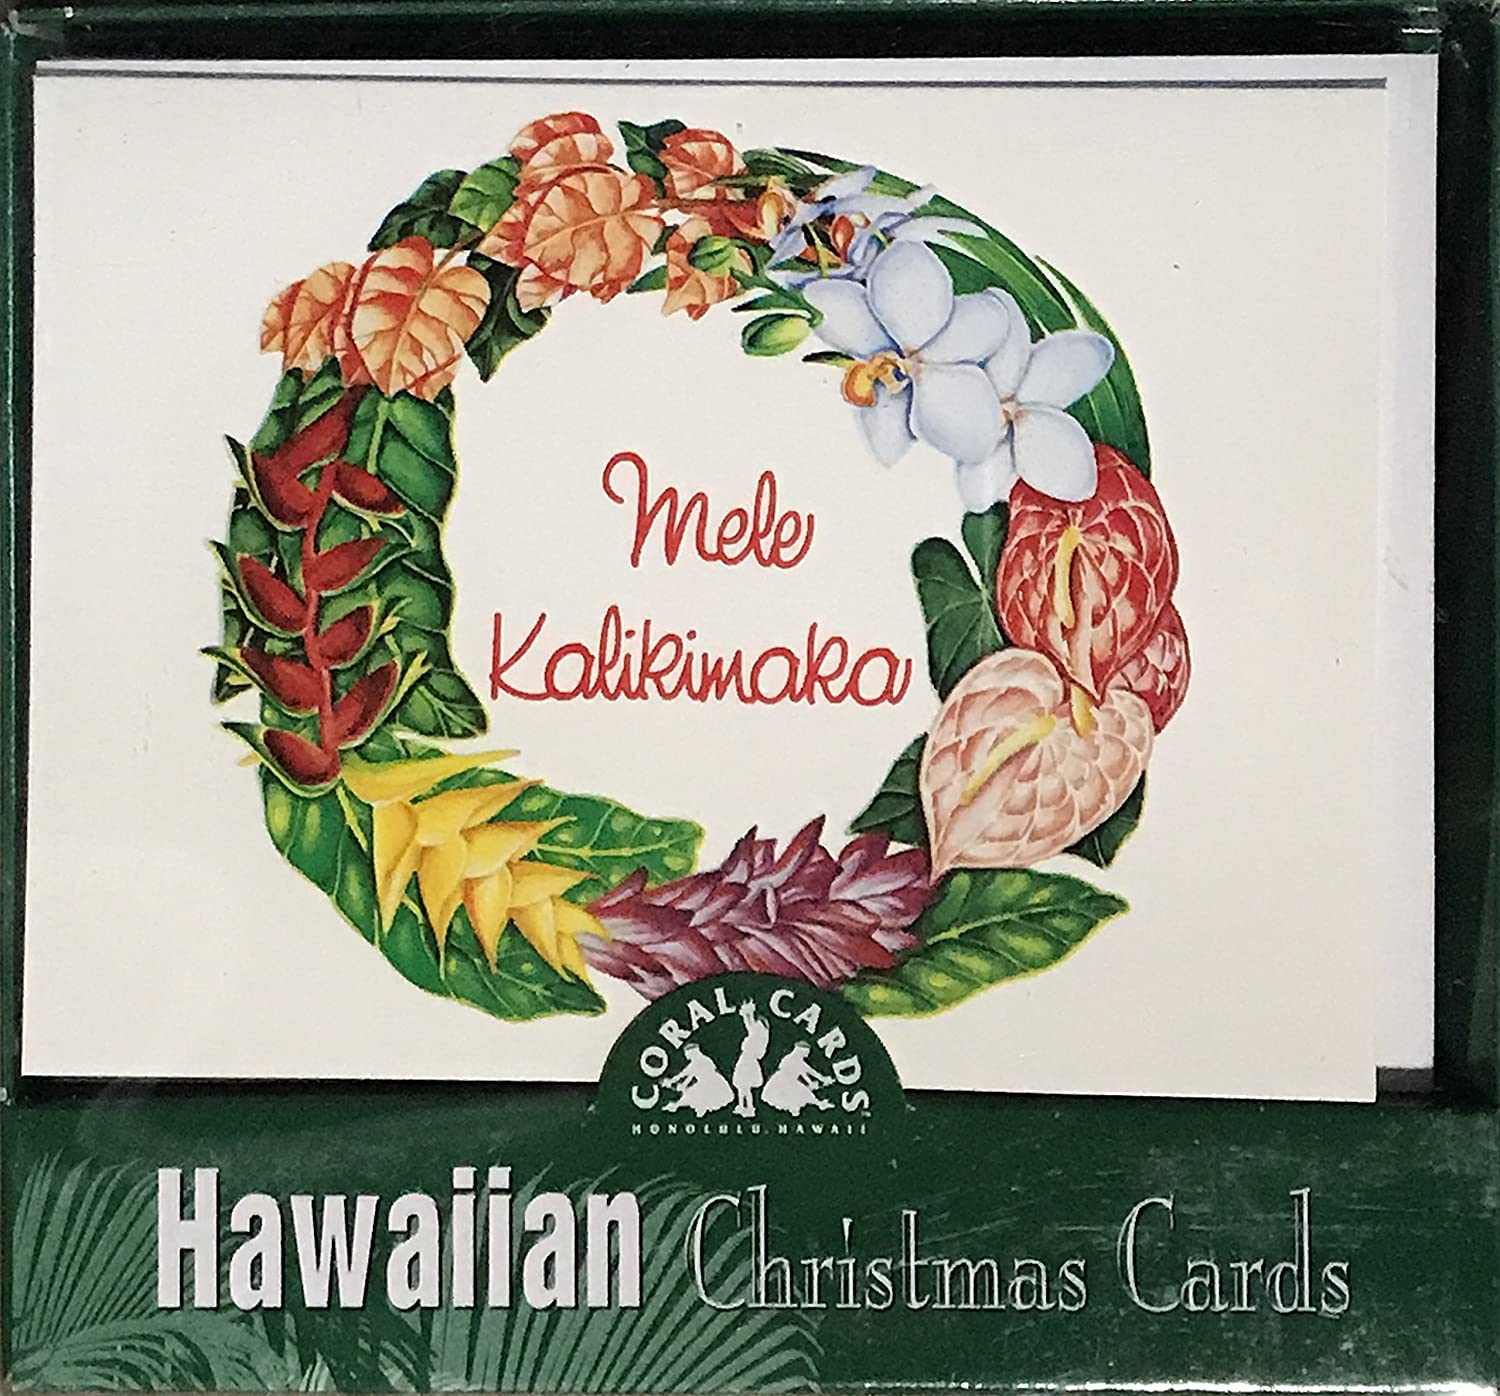 Amazon.com : Hawaiian Holiday Christmas Greeting Cards (Mele ...